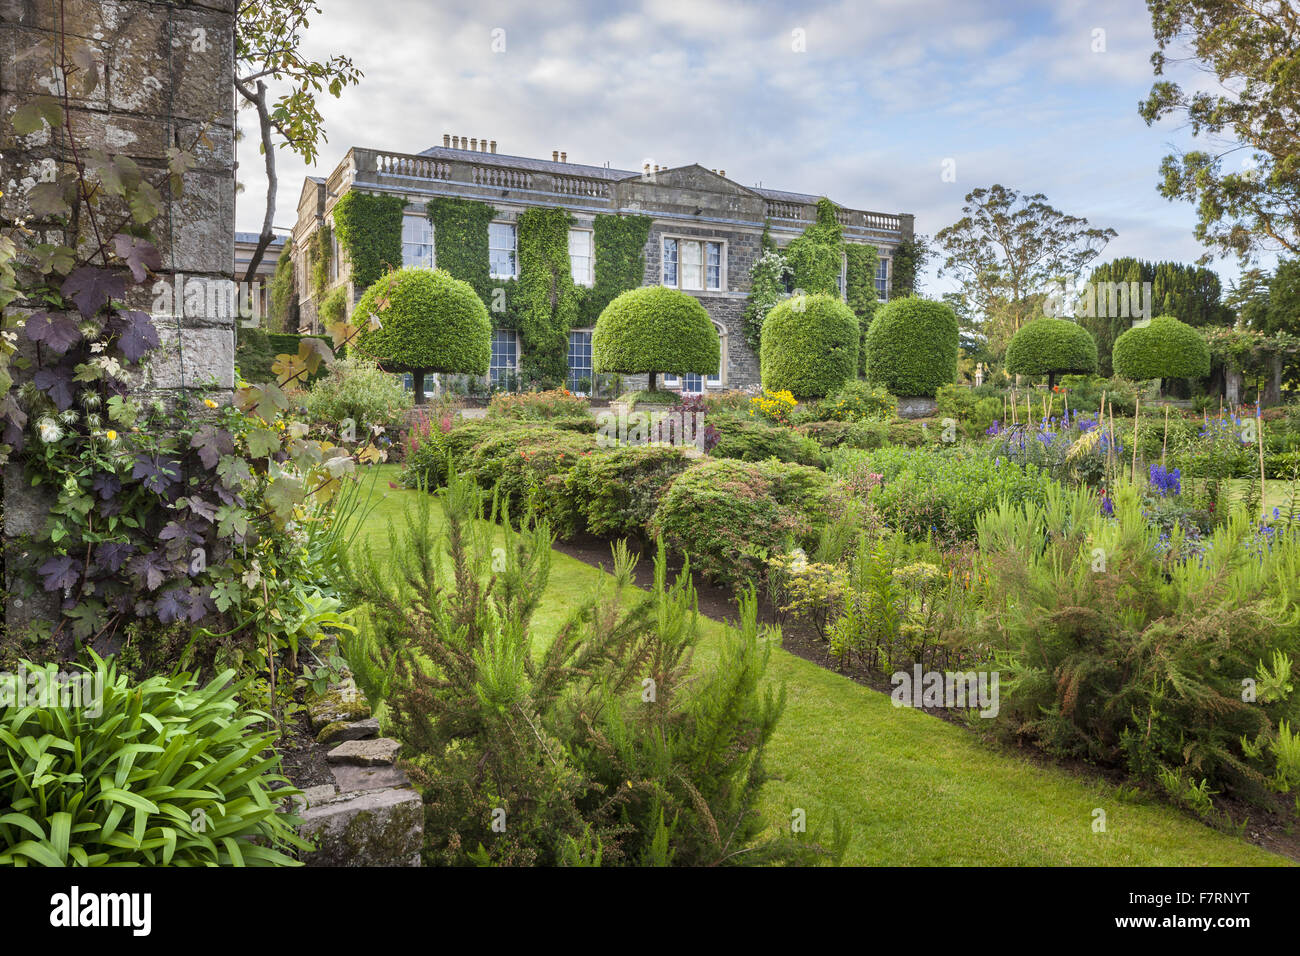 The West Front And Sunk Garden At Mount Stewart, County Down. Mount Stewart  Has Been Voted One Of The Worldu0027s Top Ten Gardens, And Reflects The Design  And ...